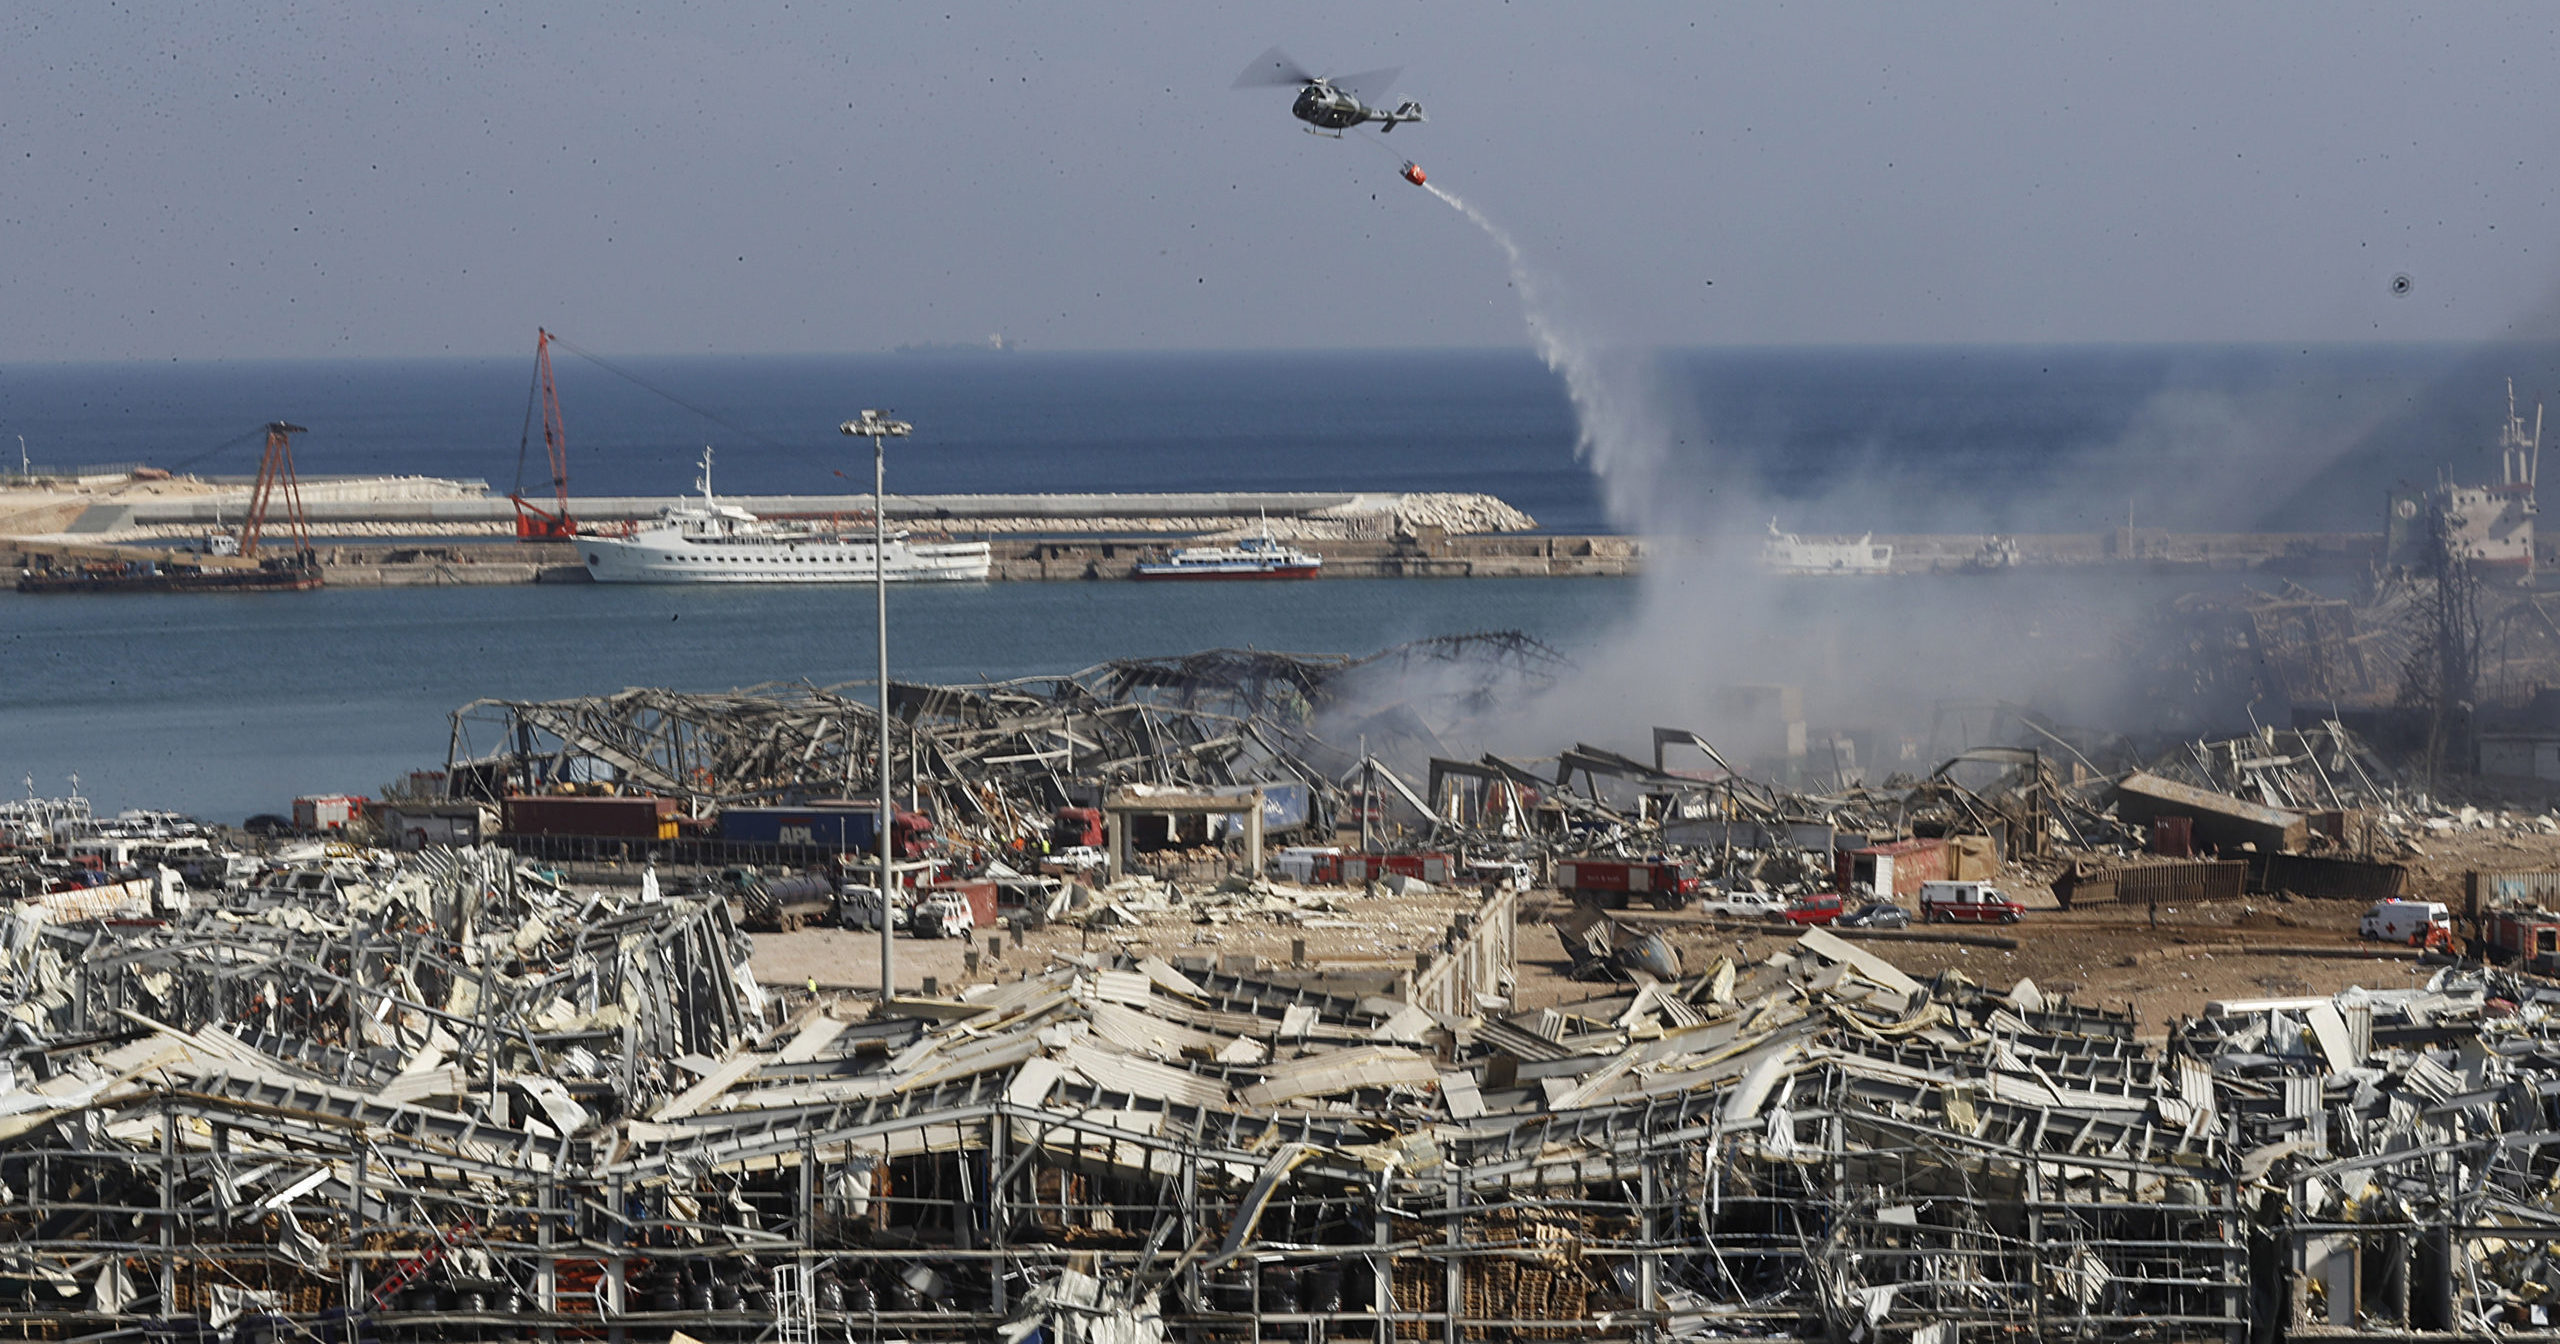 A Lebanese army helicopter dumps water at the scene where an explosion hit the seaport of Beirut, Lebanon, on Aug. 5, 2020, killing at least 100 people and wounding thousands.